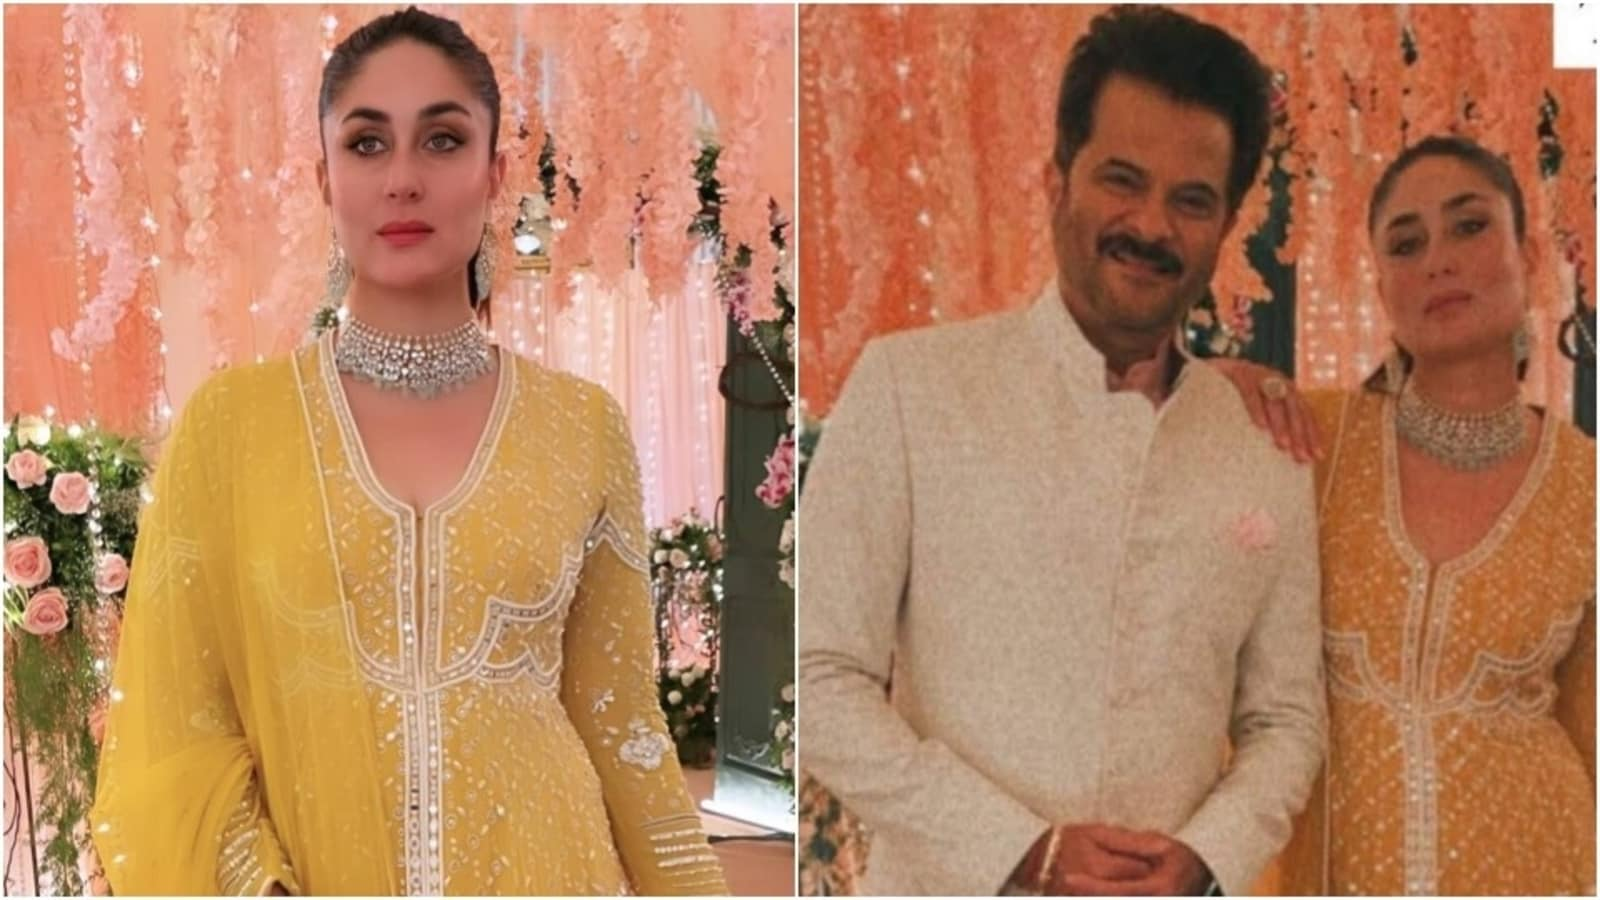 Kareena Kapoor shoots with Anil Kapoor in ₹1 lakh anarkali set, see pics  and video | Fashion Trends - Hindustan Times